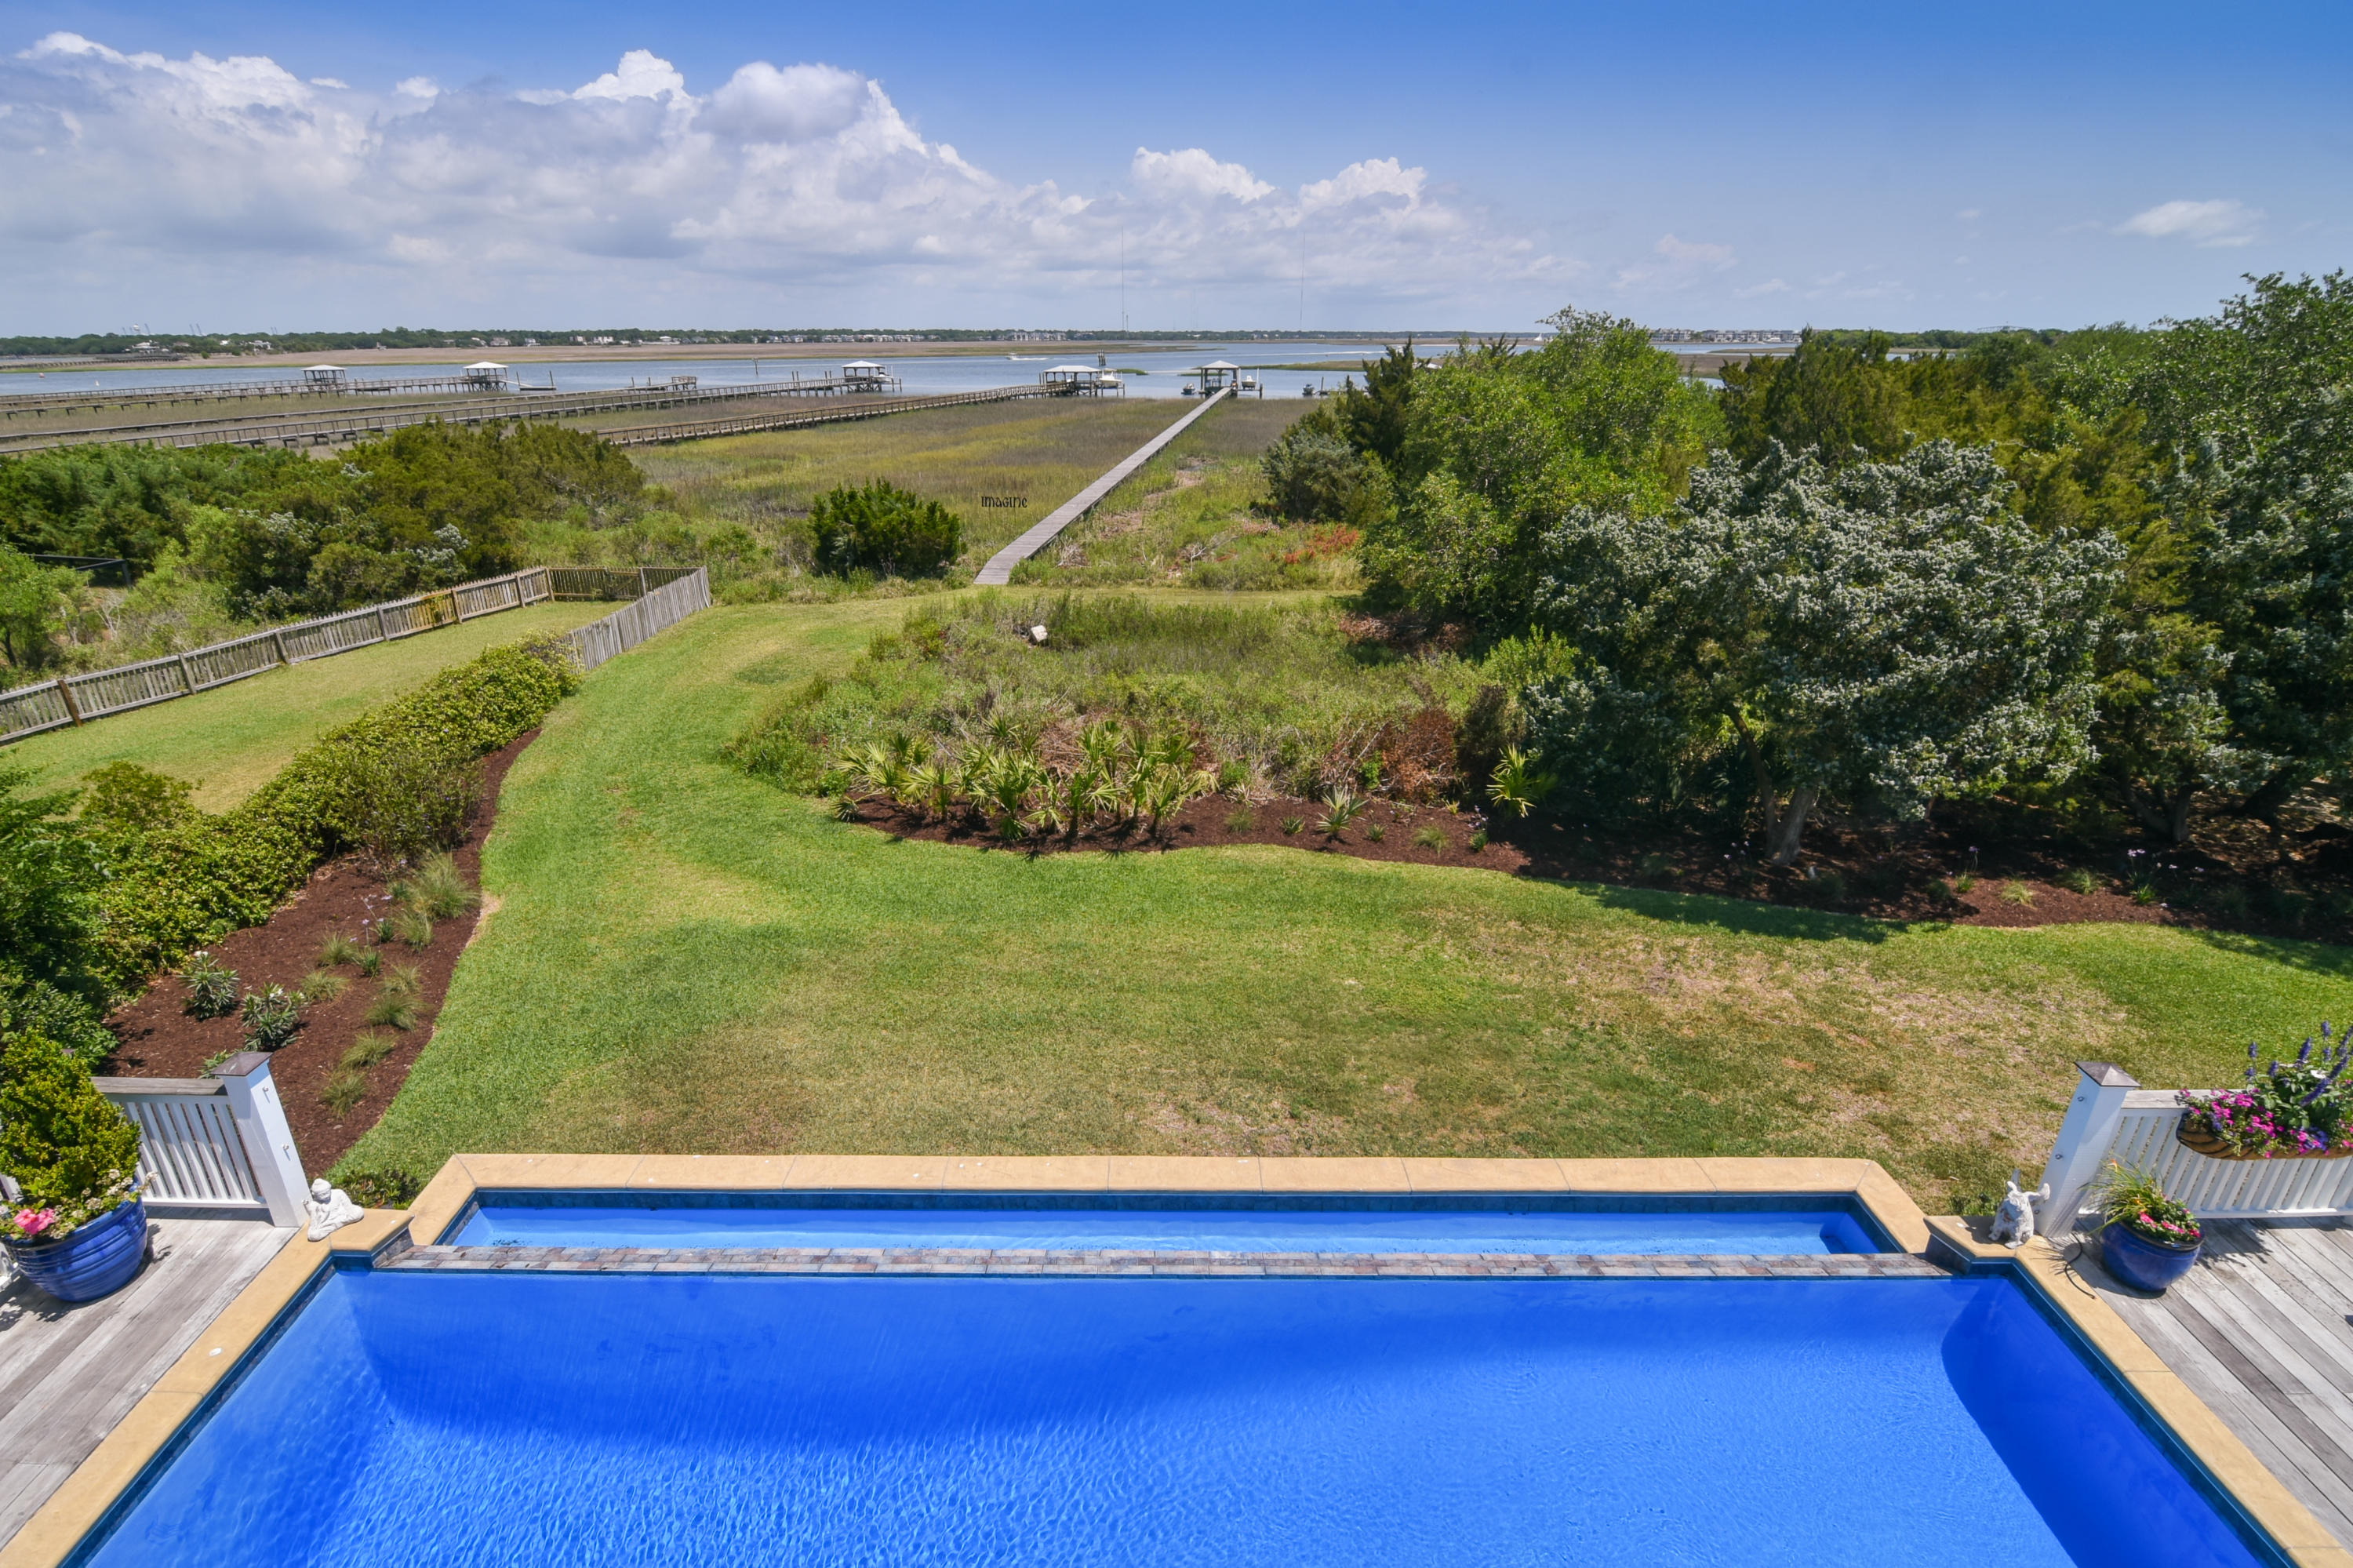 Sullivans Island Homes For Sale - 405 Station 12, Sullivans Island, SC - 15